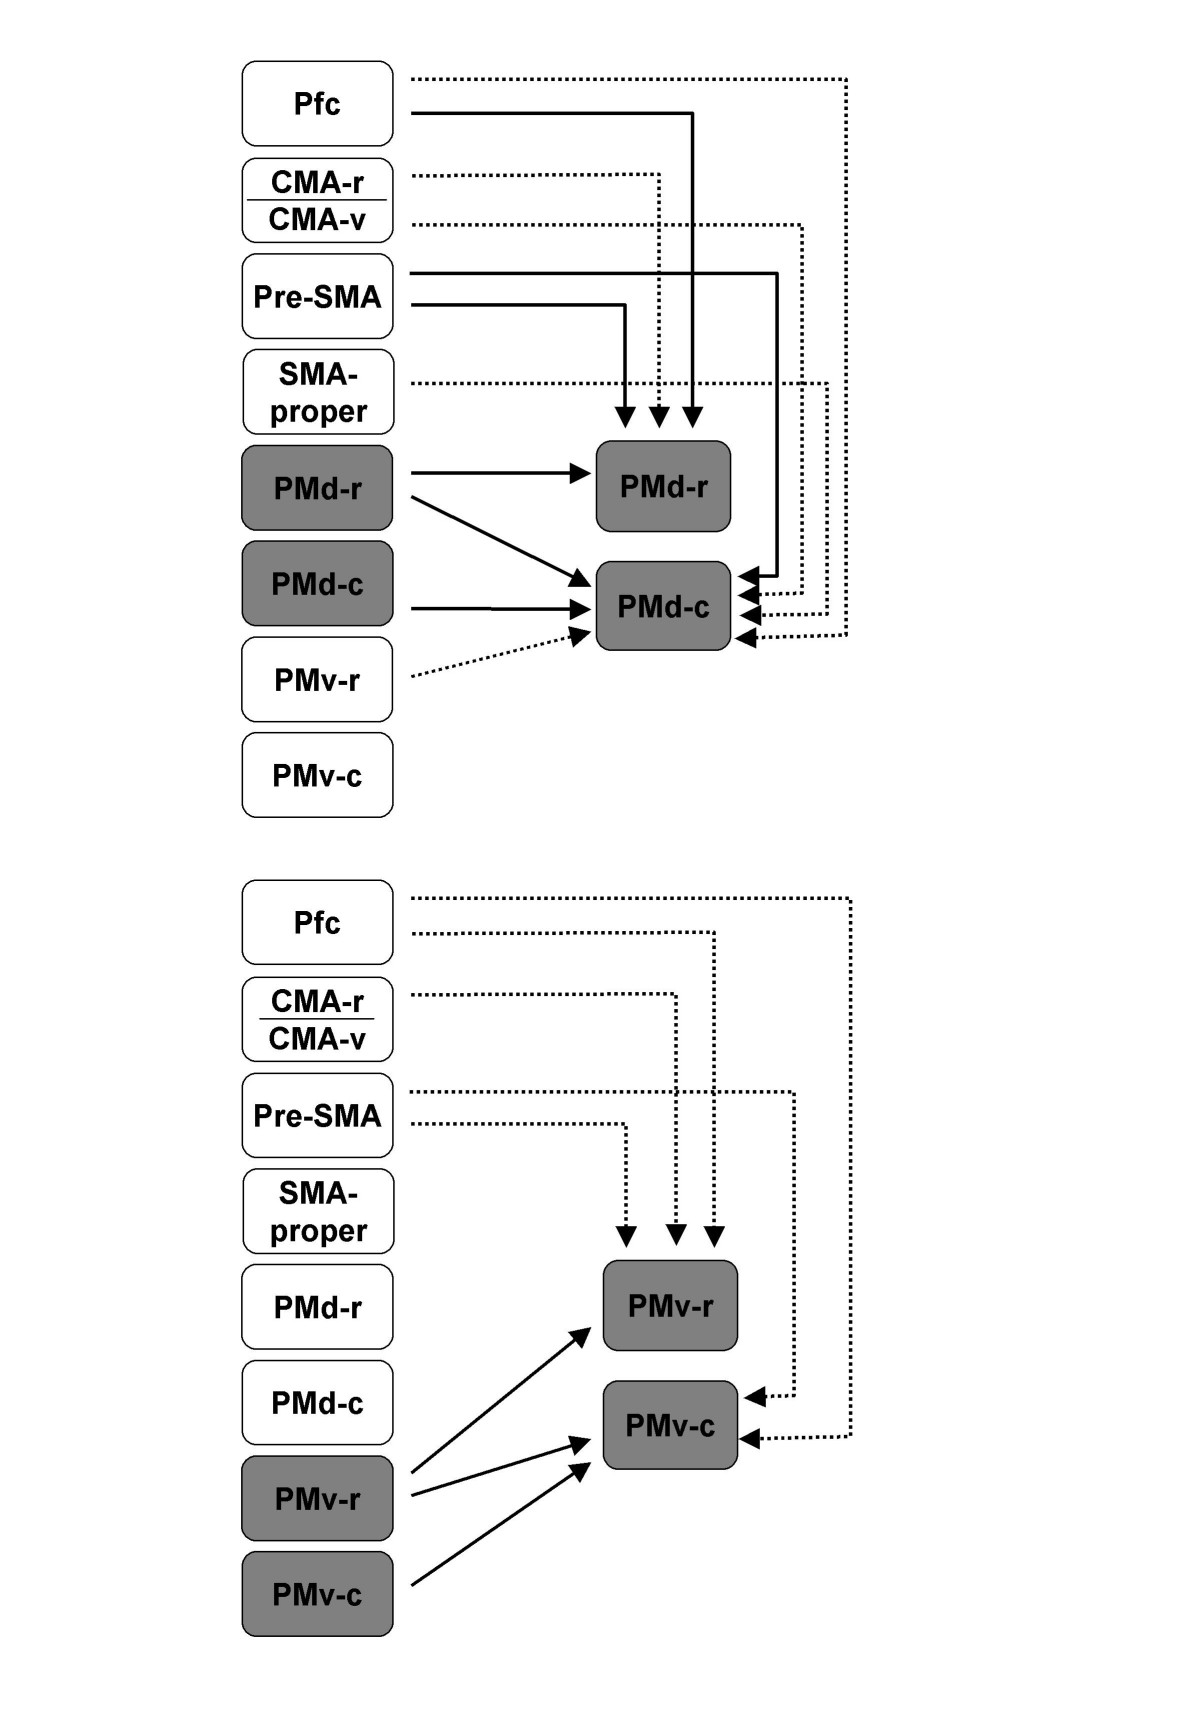 http://static-content.springer.com/image/art%3A10.1186%2F1471-2202-6-67/MediaObjects/12868_2005_Article_201_Fig9_HTML.jpg